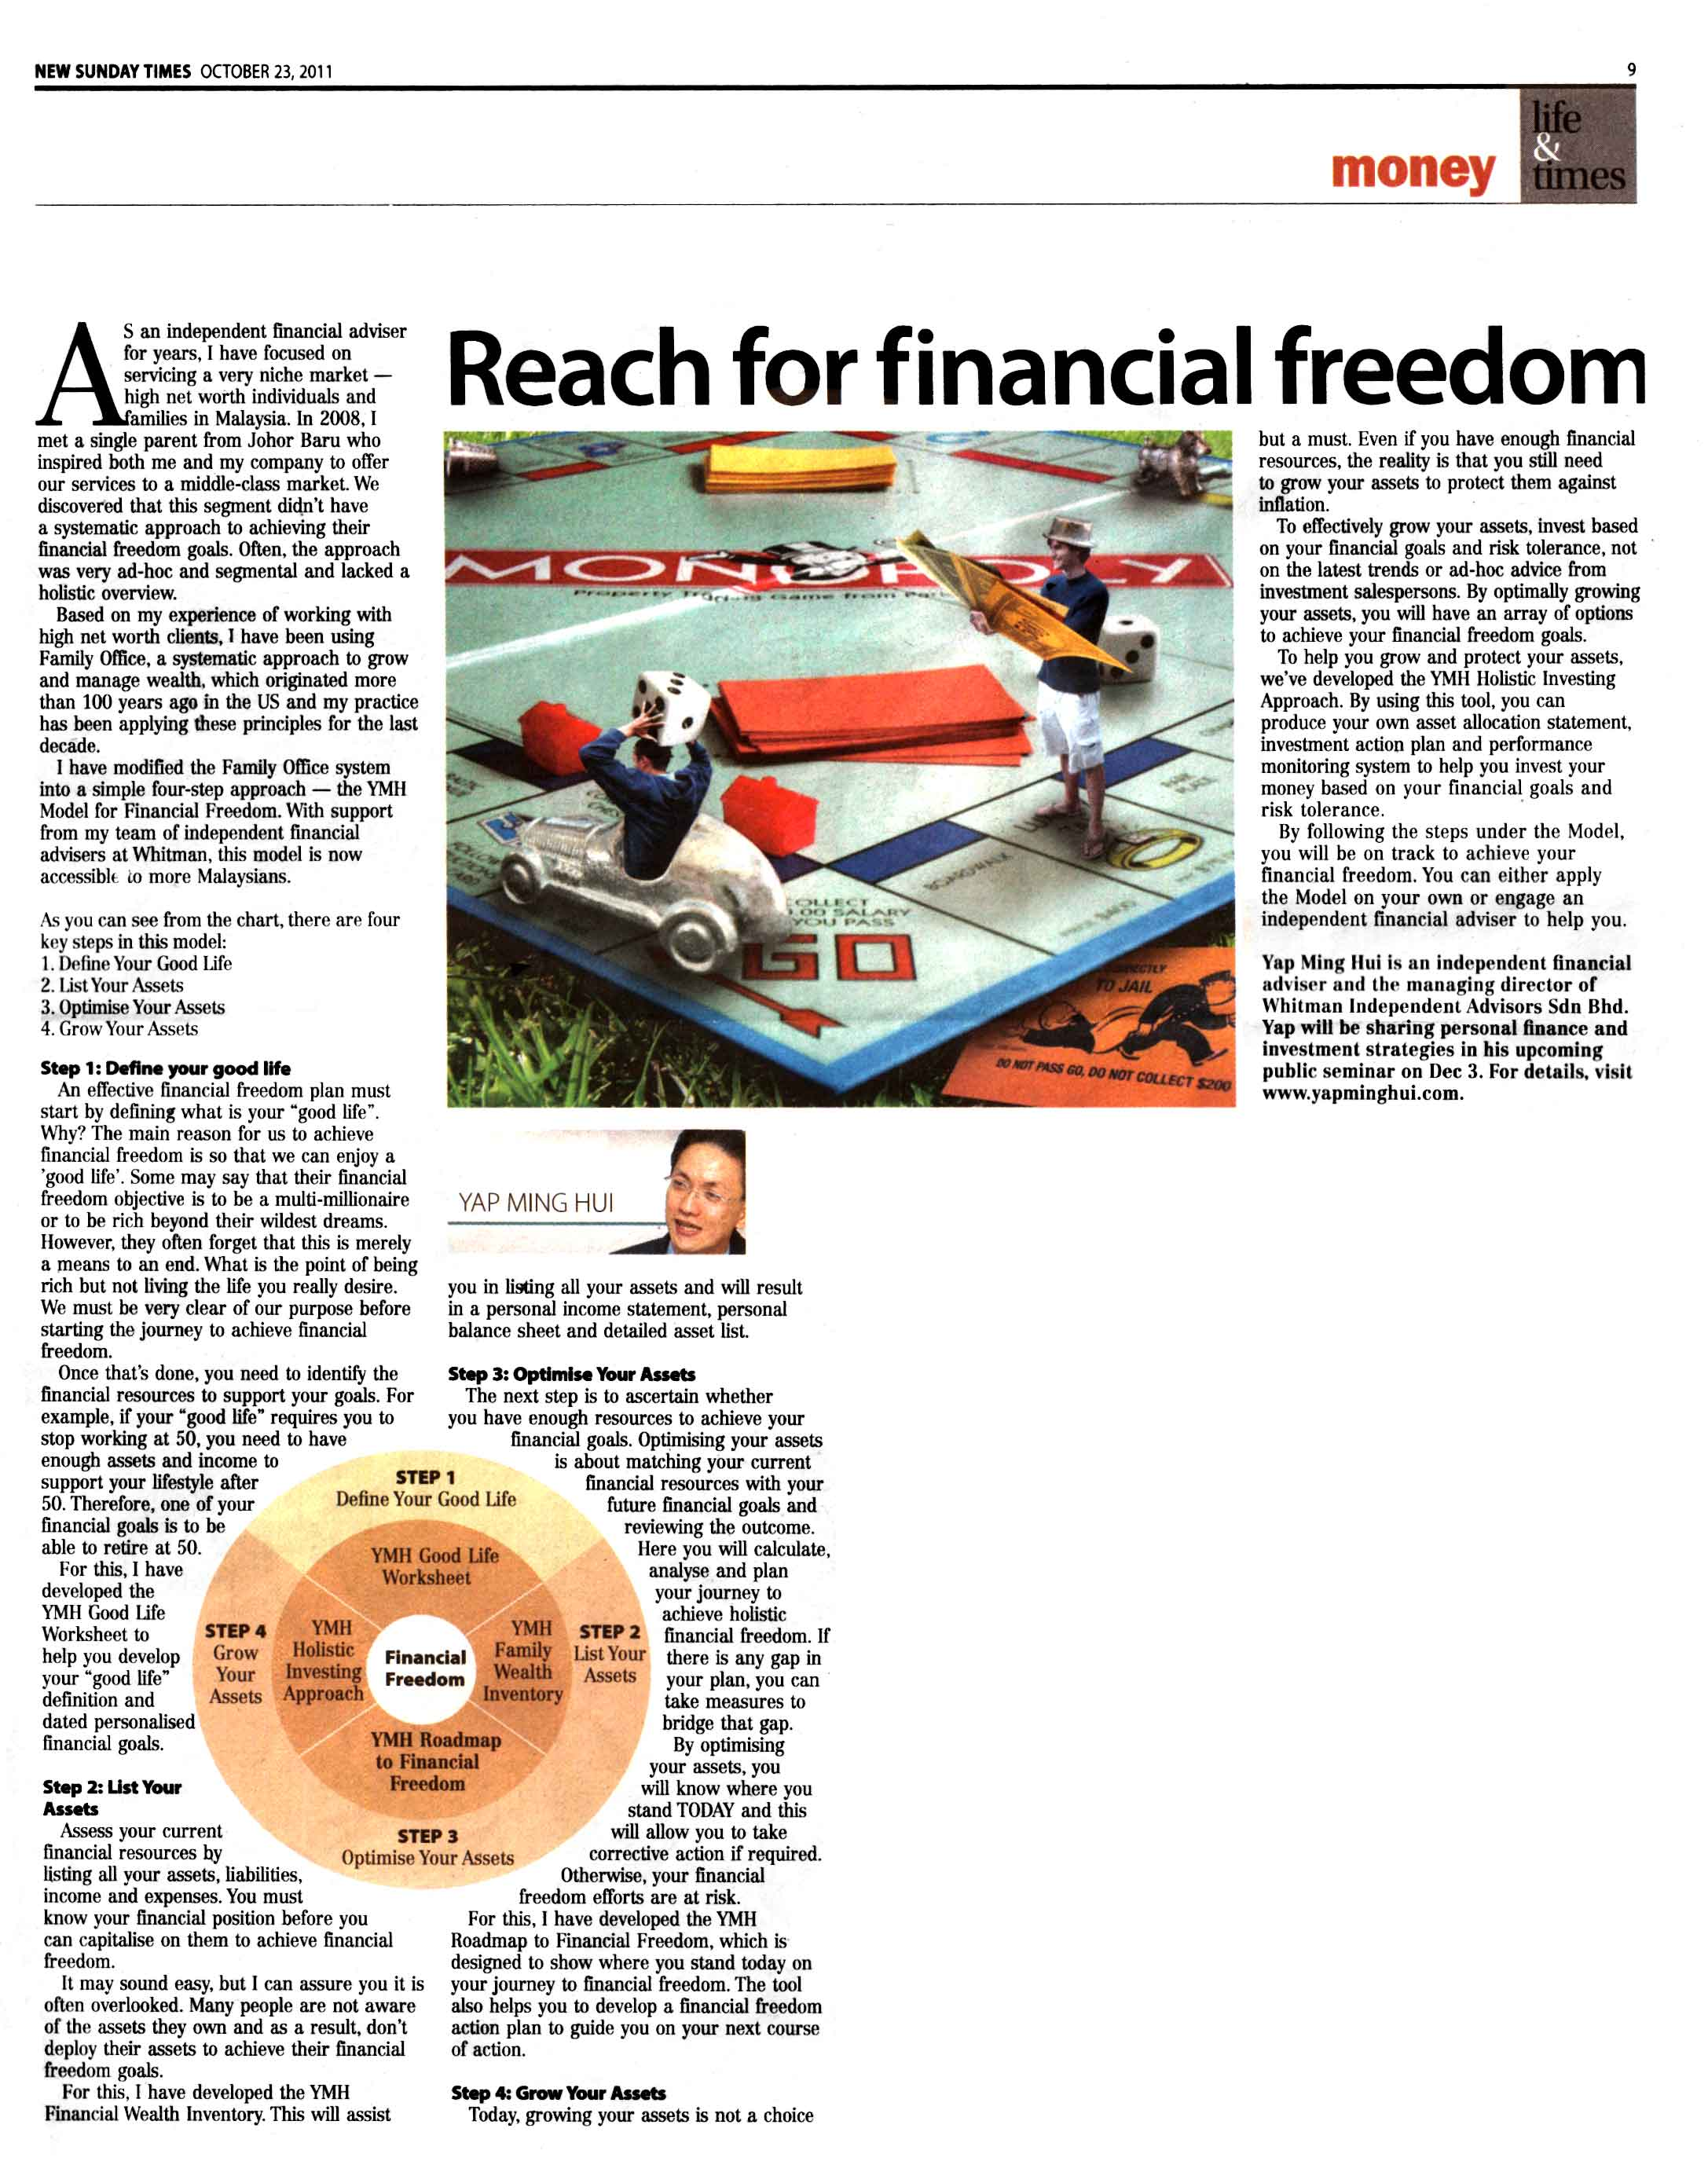 Reach For Financial Freedom - 23 Oct 2011